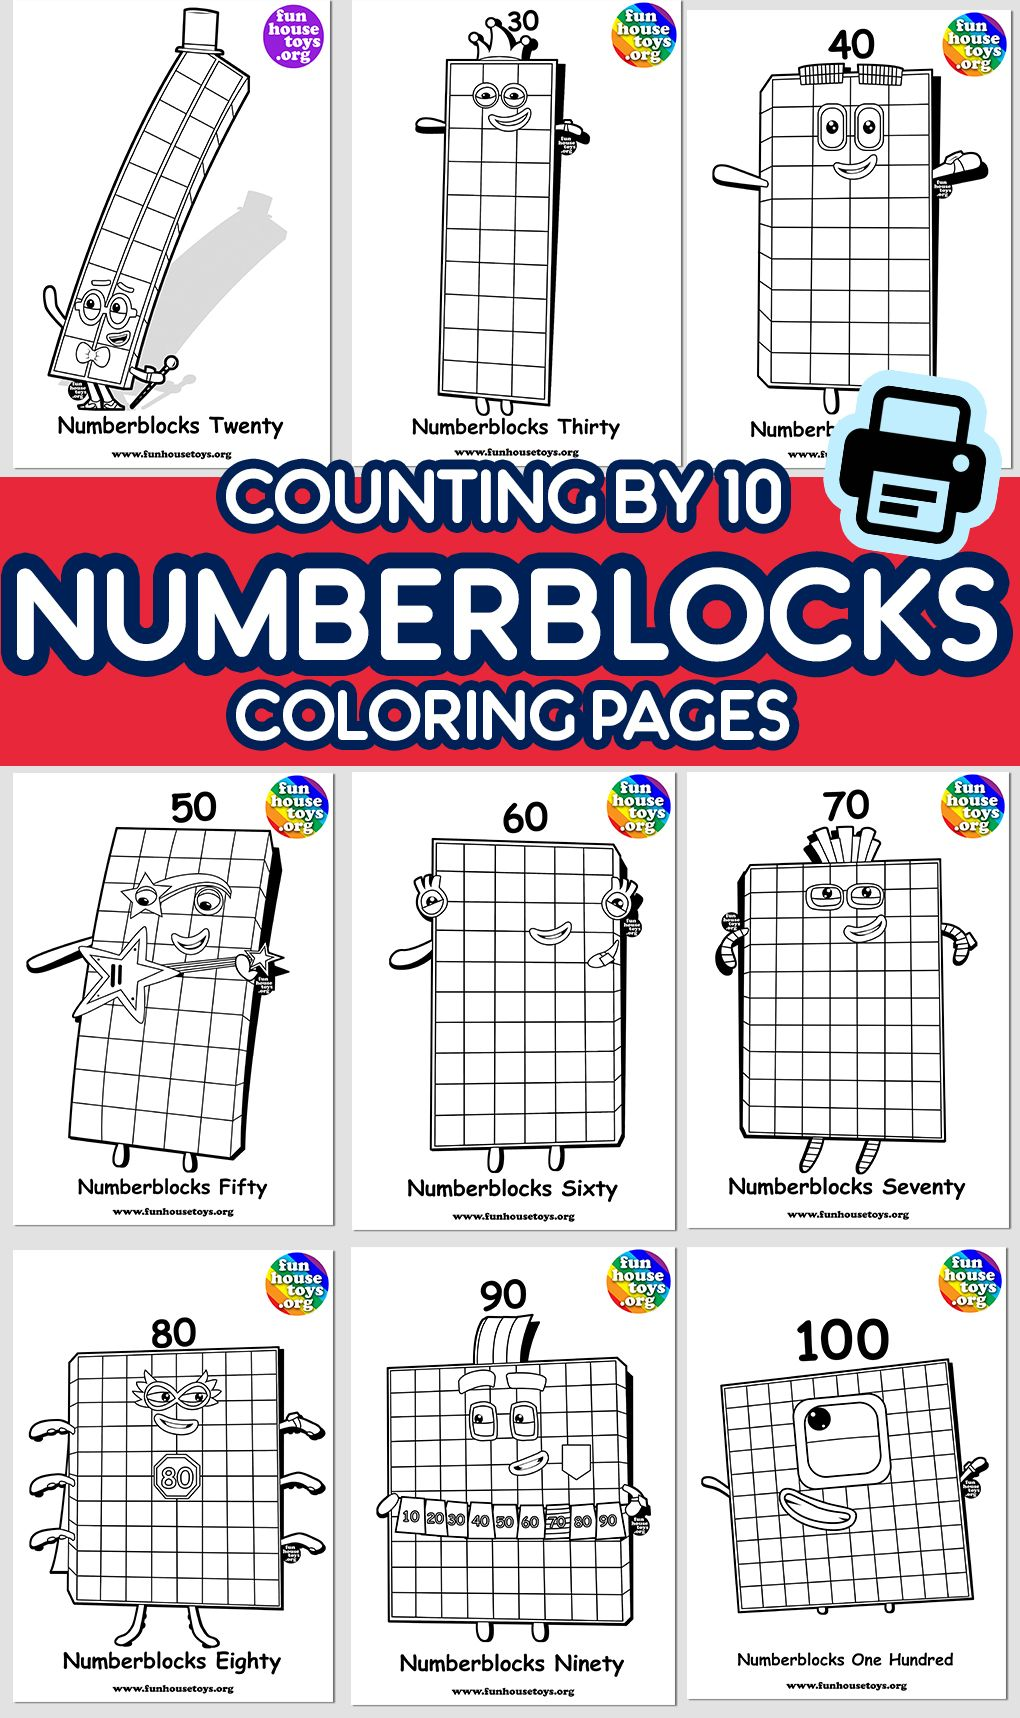 New Numberblocks 100 Available As Coloring Printable For Kids Print Ready Numbers For Kids Fun Printables For Kids Coloring Pages